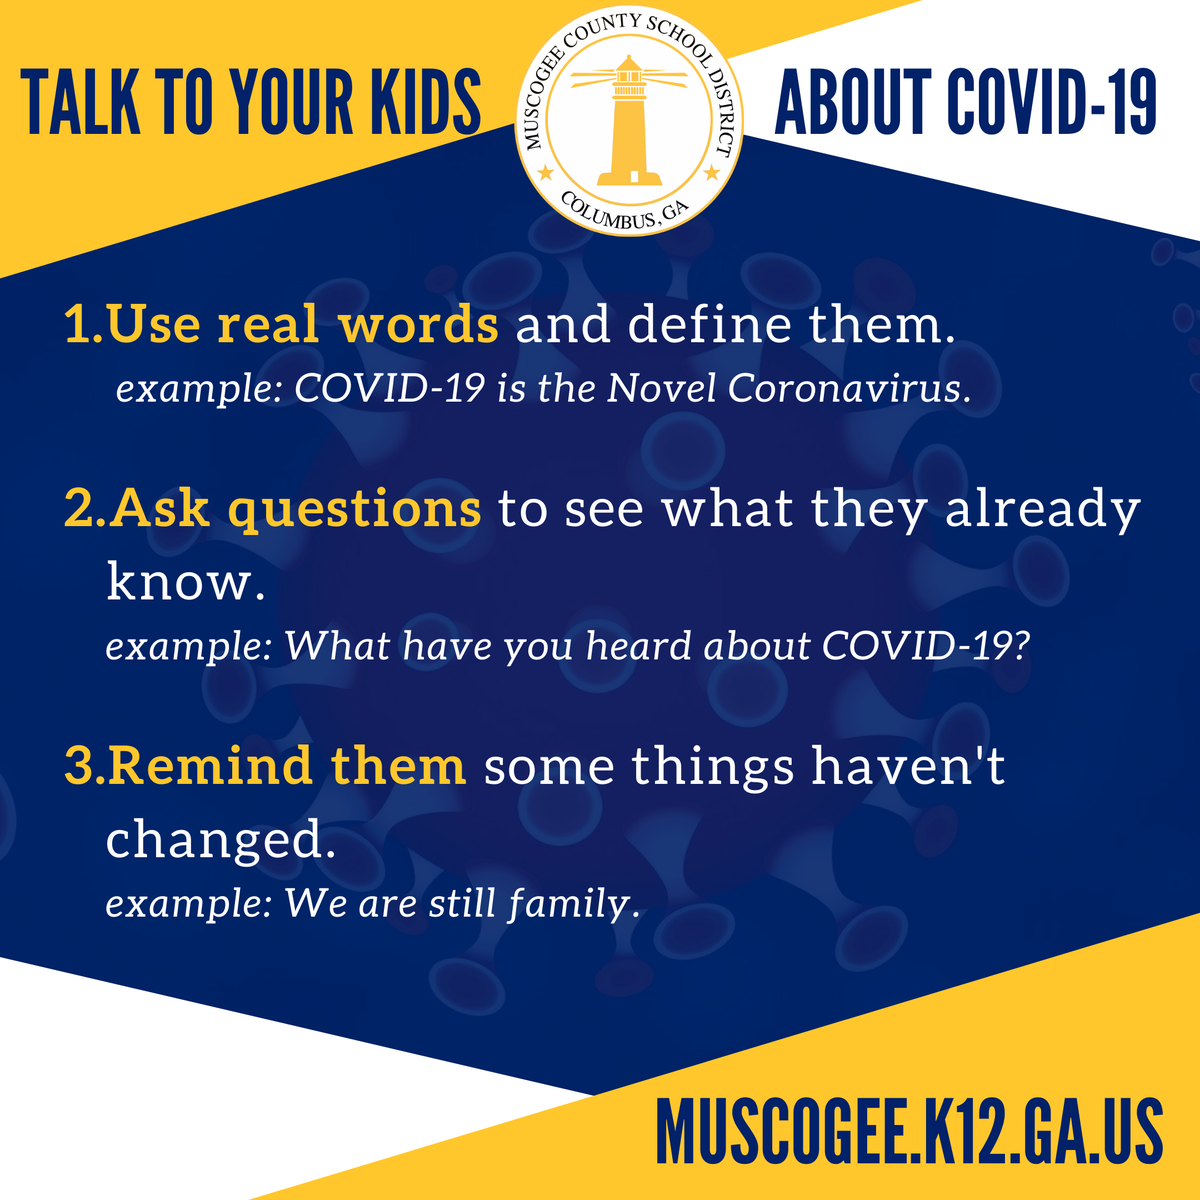 In case you are looking for ways to connect with your kids about COVID-19: 1. See our interview with WTVM News Leader 9: . 2. Learn more under